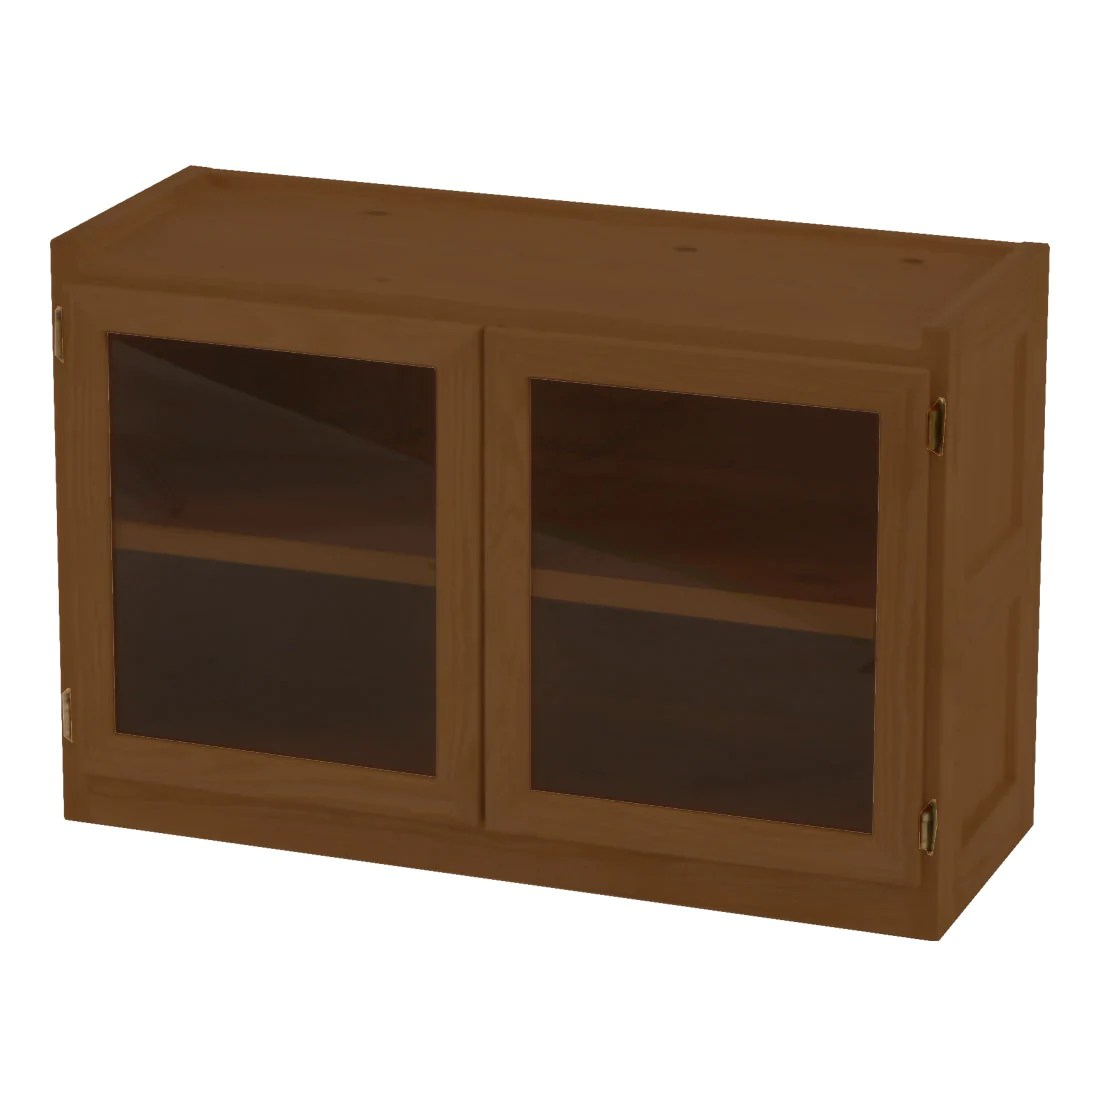 Bookcase Tv Stand 45in Wide 30in High